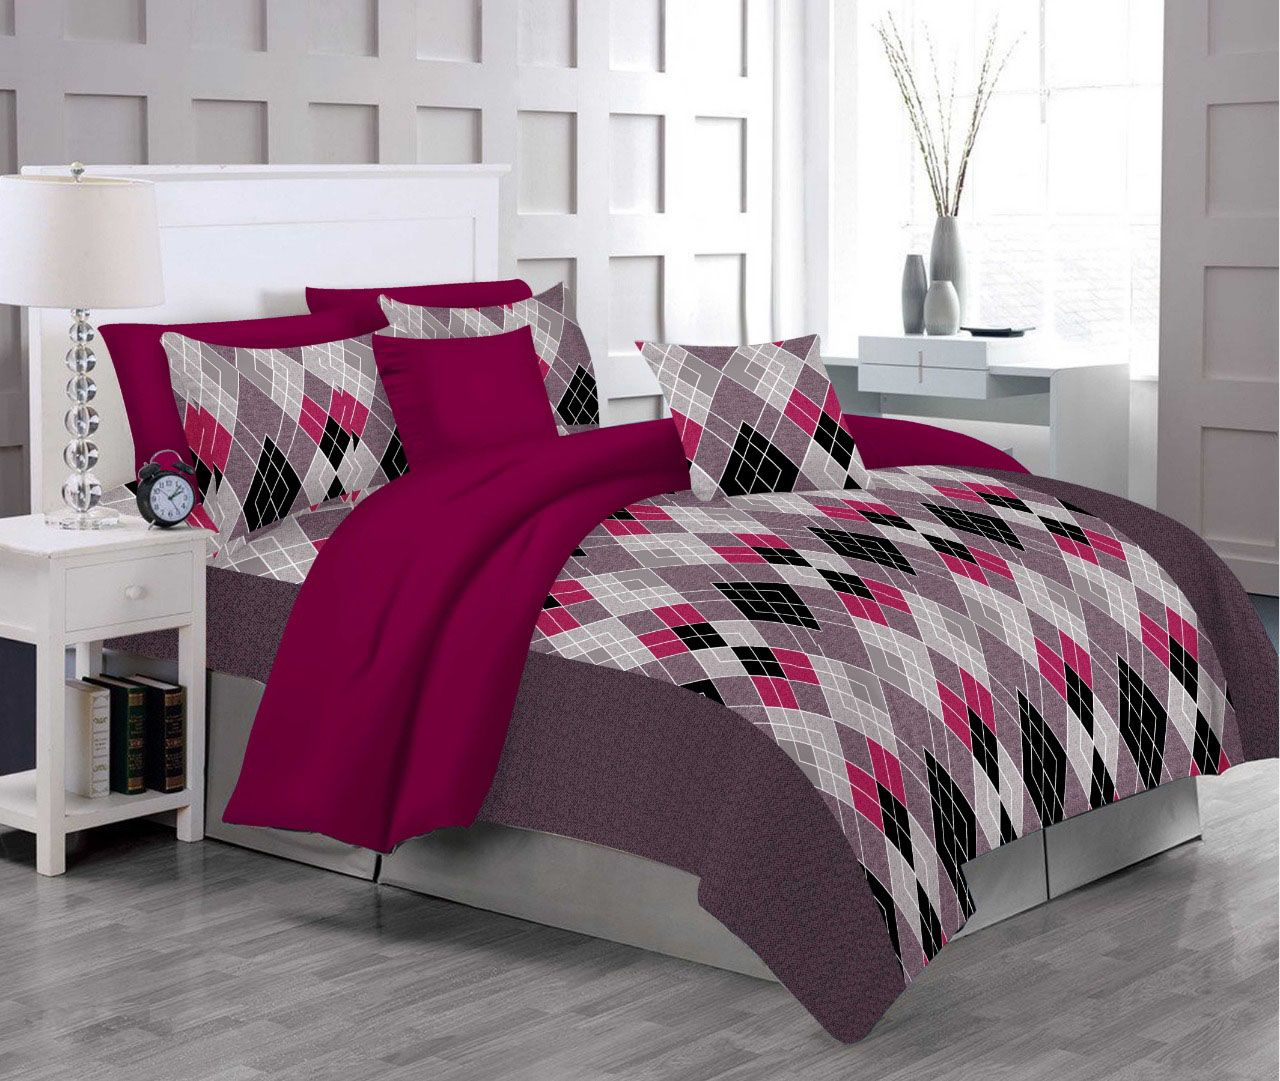 Printed hotel bed linen india in 2020 Hotel bed, Bed